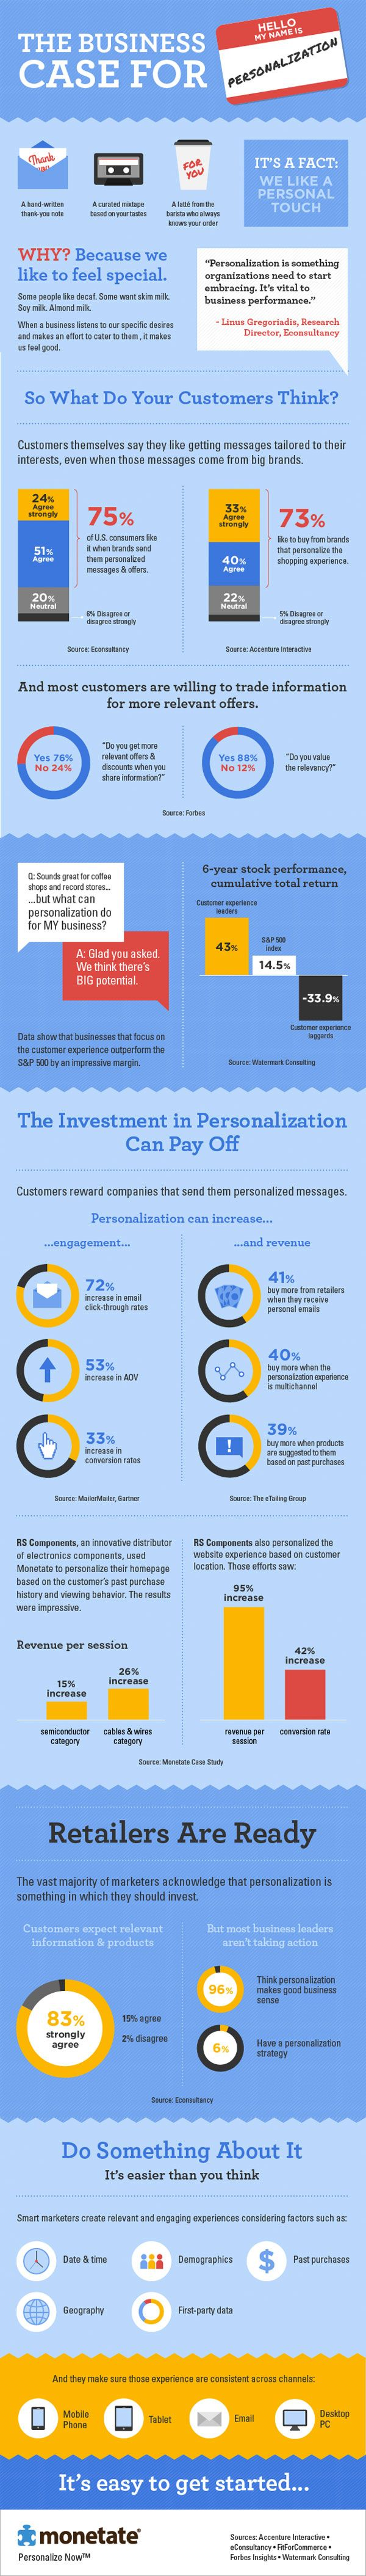 The Business Case for Personalization [Infographic]